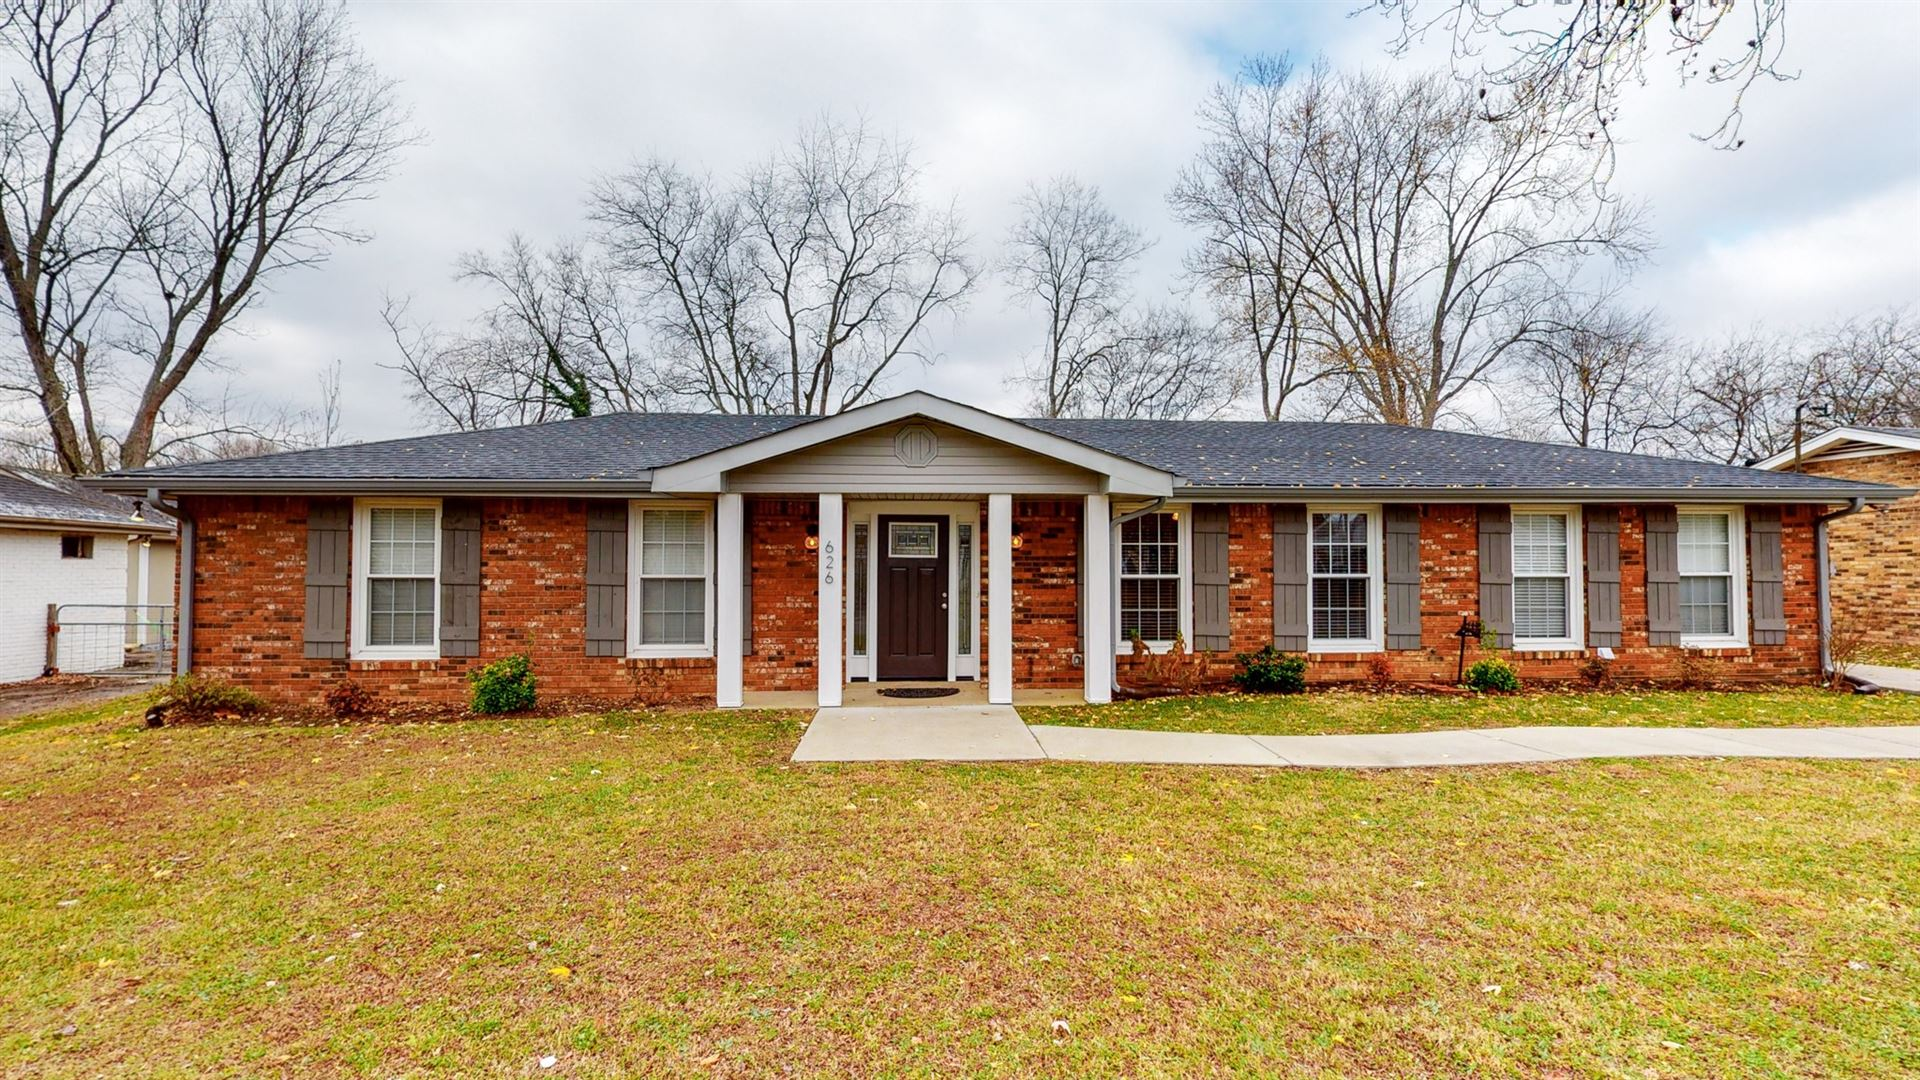 626 Albany Dr, Hermitage, TN 37076 - MLS#: 2210563